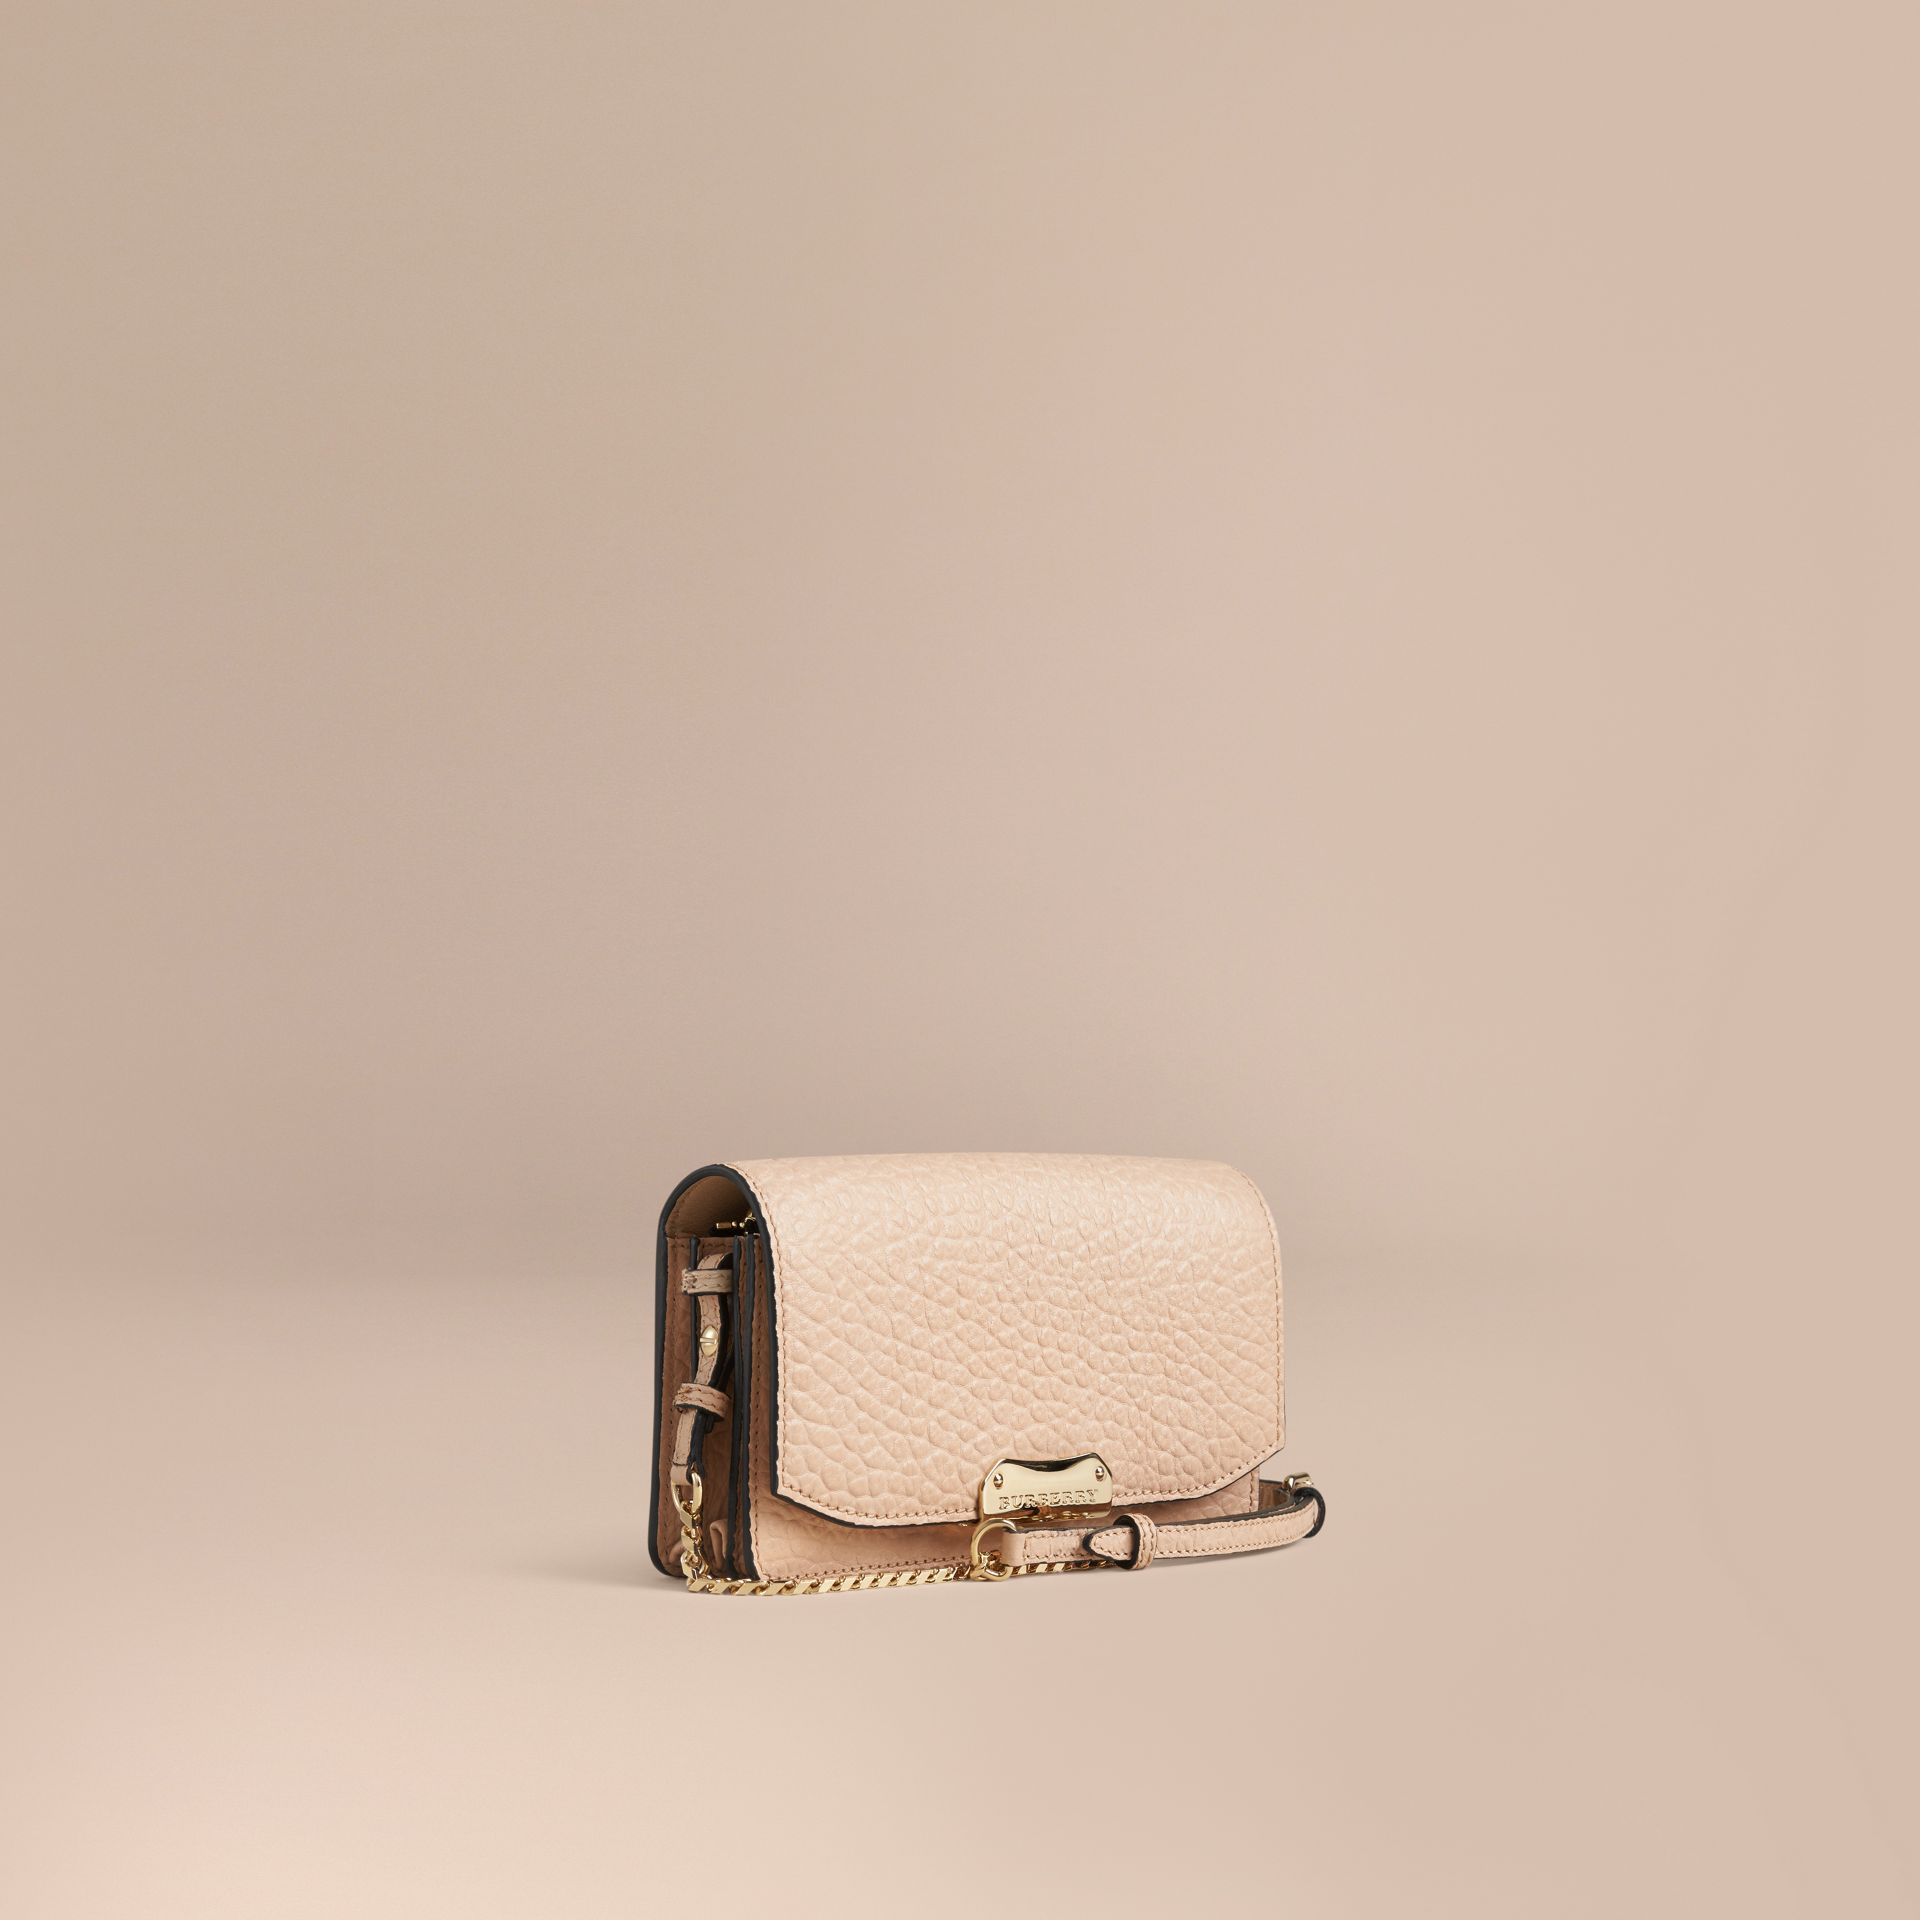 Pale apricot Signature Grain Leather Clutch Bag with Chain Pale Apricot - gallery image 1